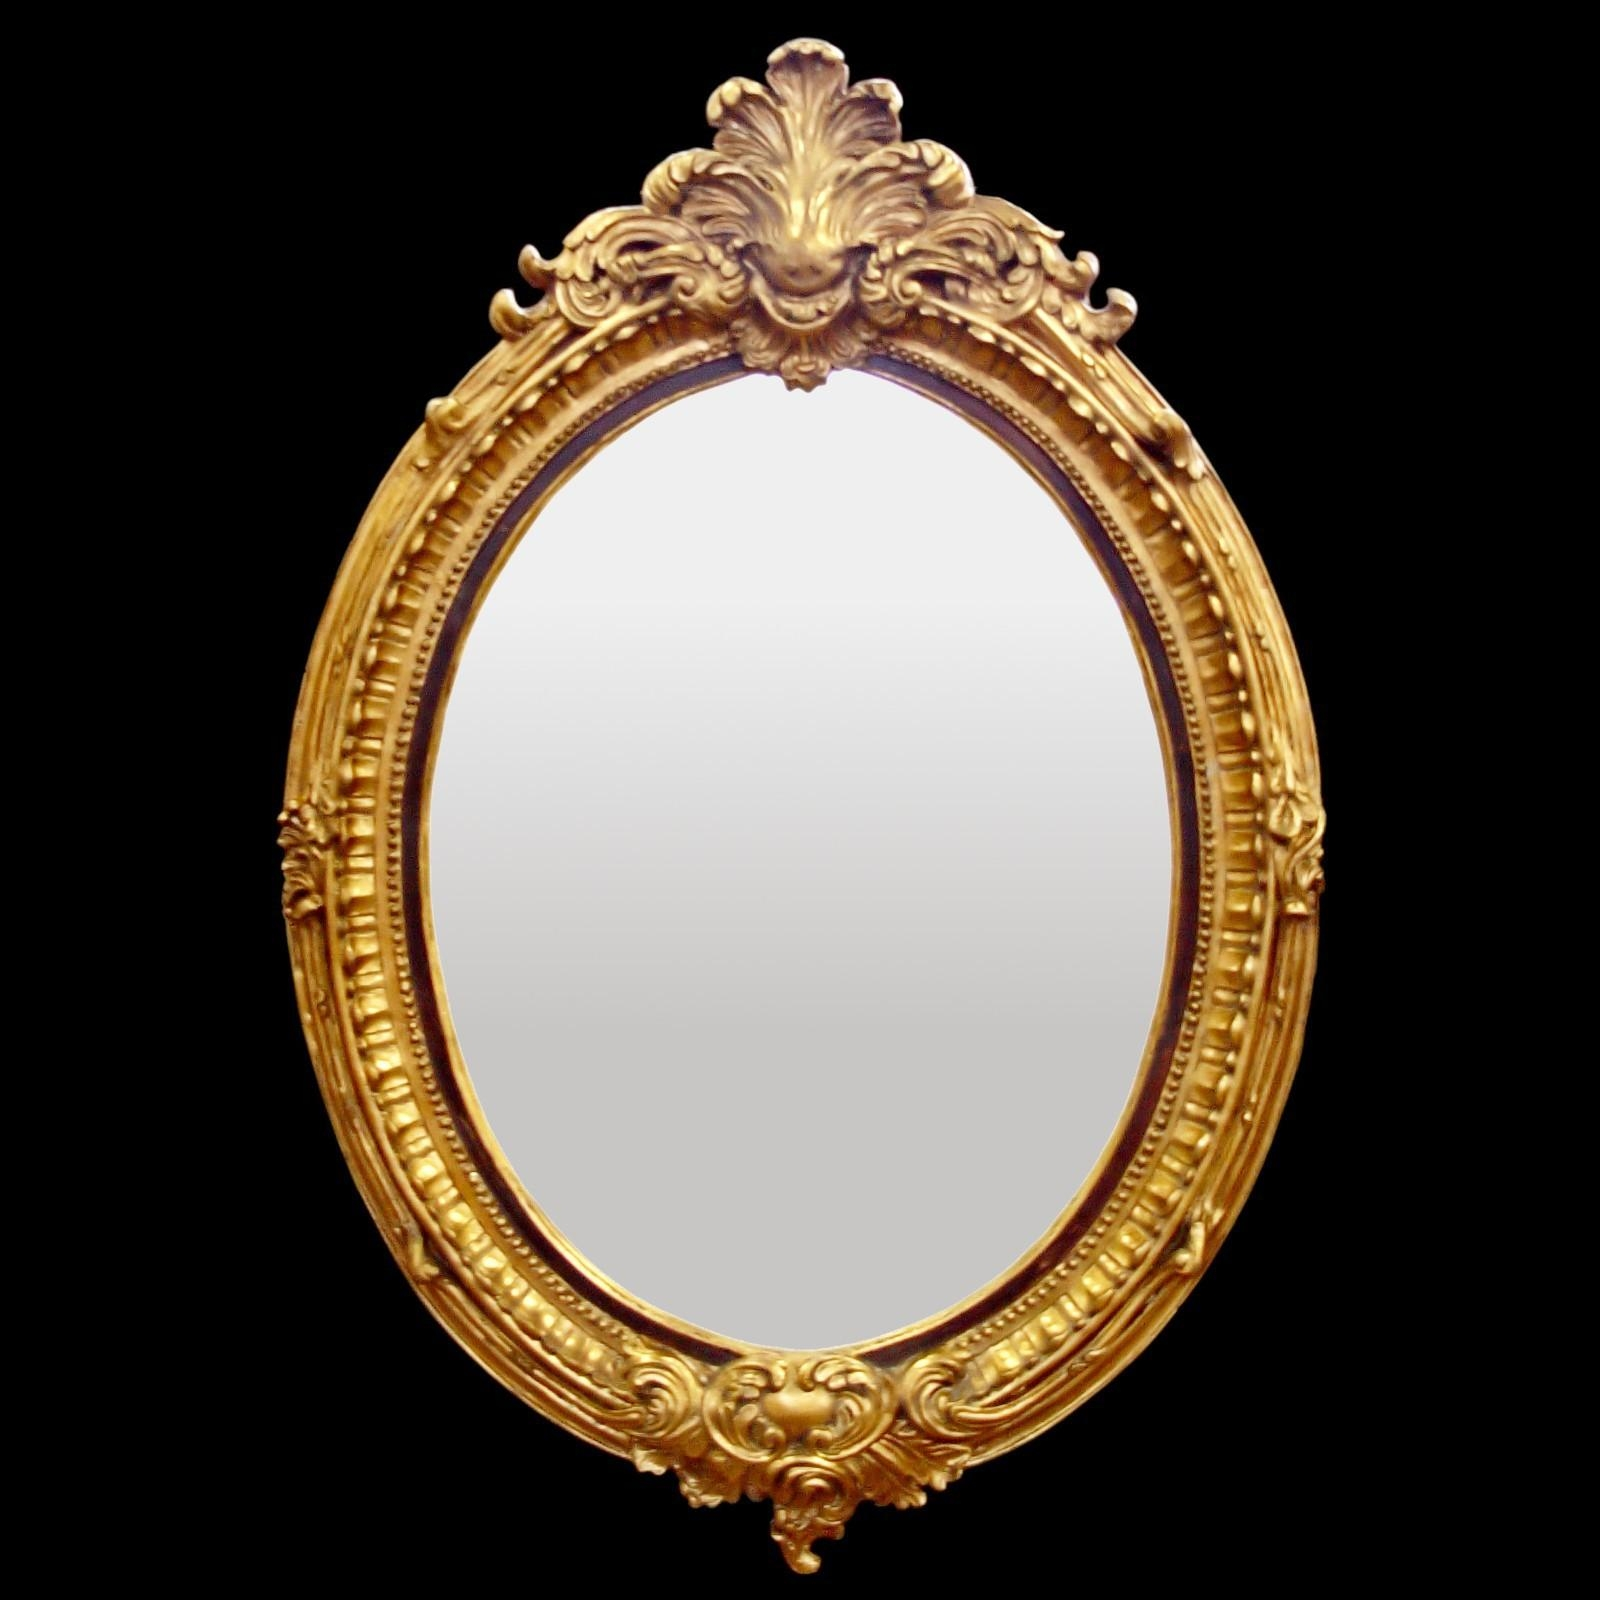 Baroque Hall Mirror Oval Wall Mirror Gold Color Red Leaf Motif Intended For Baroque Mirror Gold (View 8 of 20)